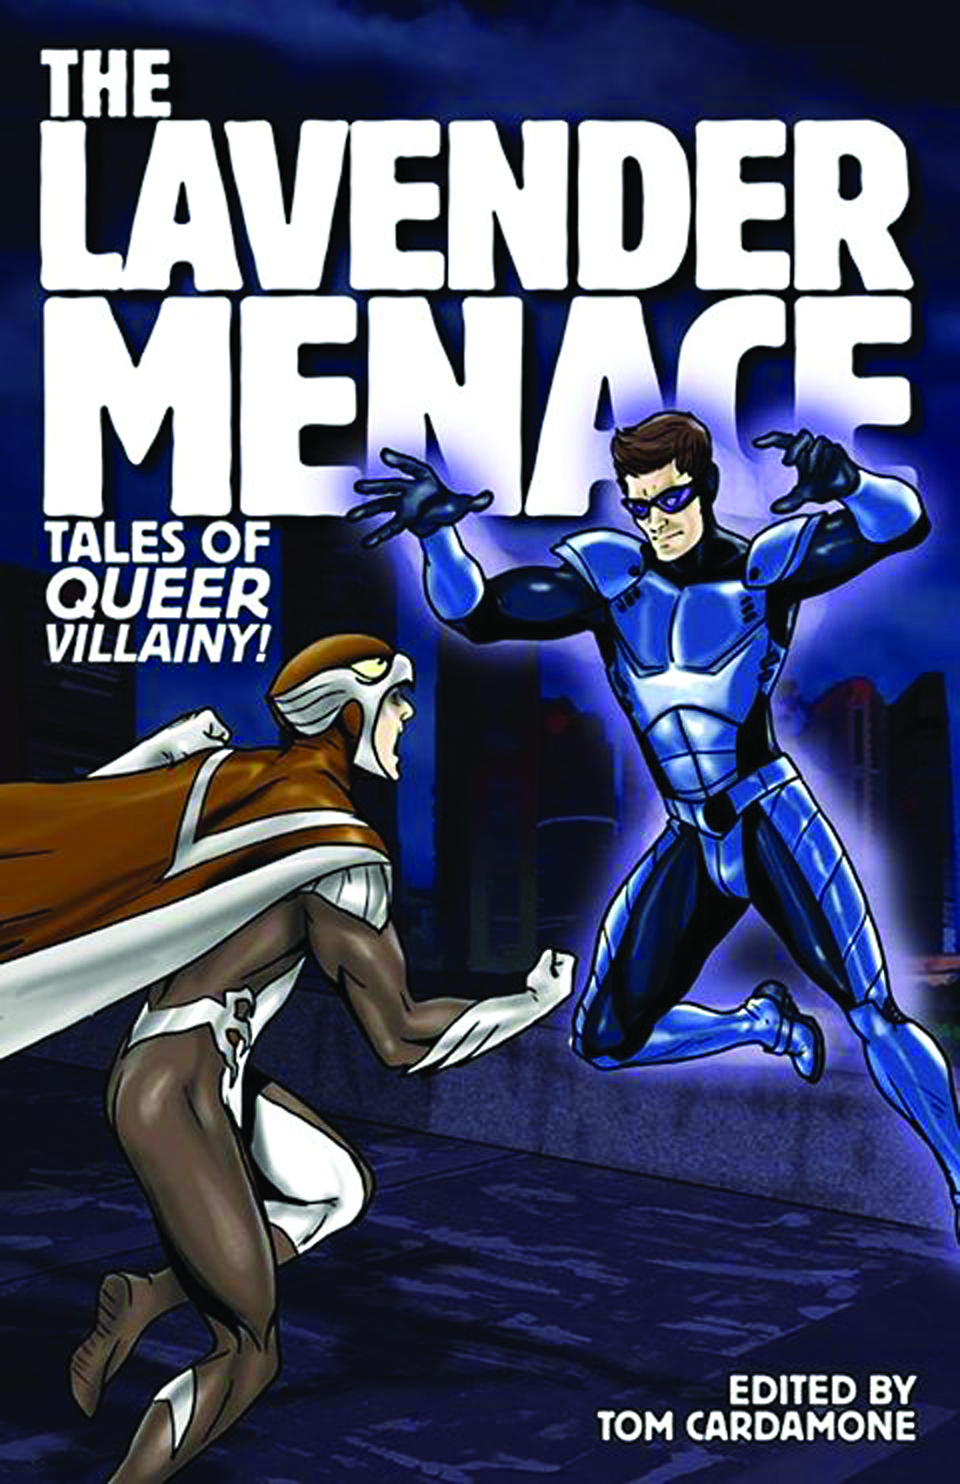 LAVENDER MENACE TALES OF QUEER VILLAINY GN